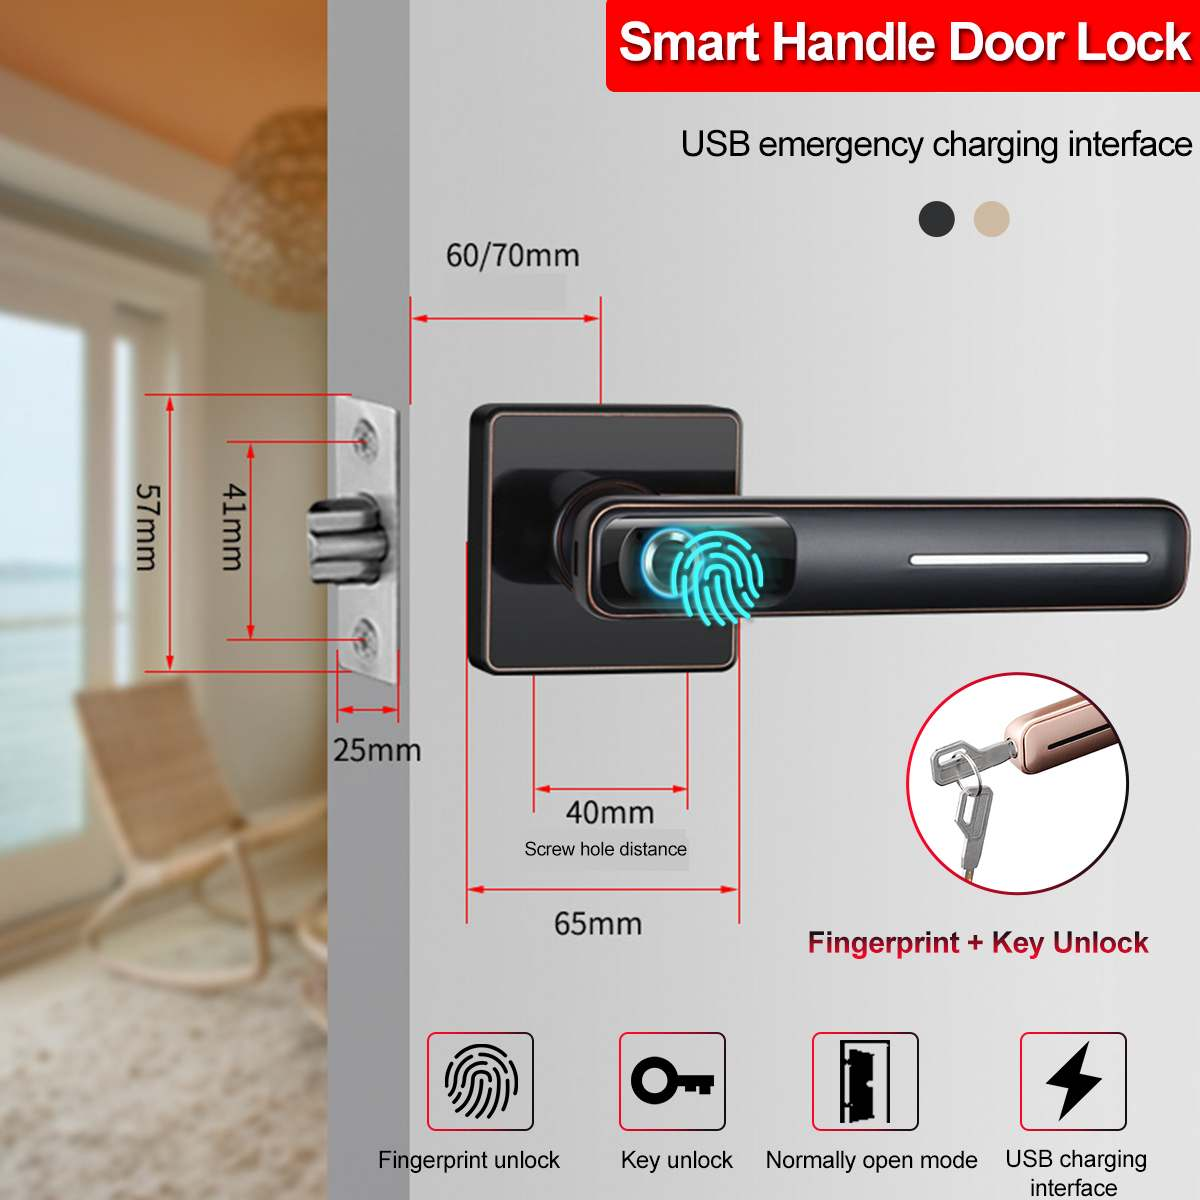 Security Electronic FPC Smart Fingerprint Door Handle With Key Set USB Charging Zinc Alloy Lock Handle For Home Office Bedroom